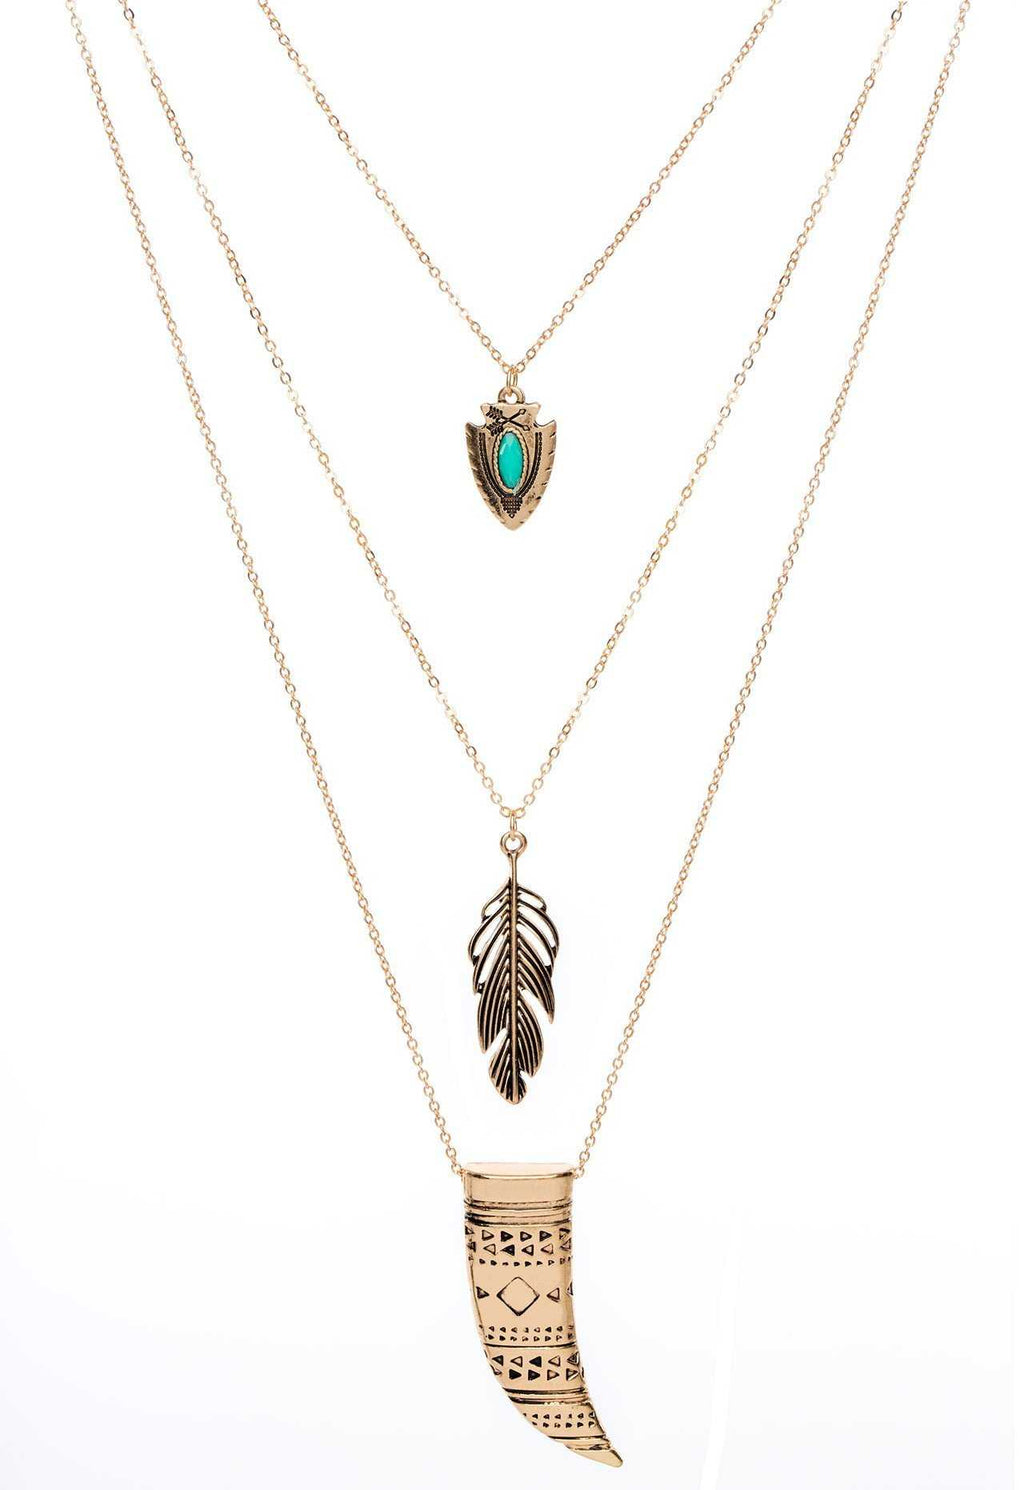 Jewelry - Refined Necklace - Turquoise